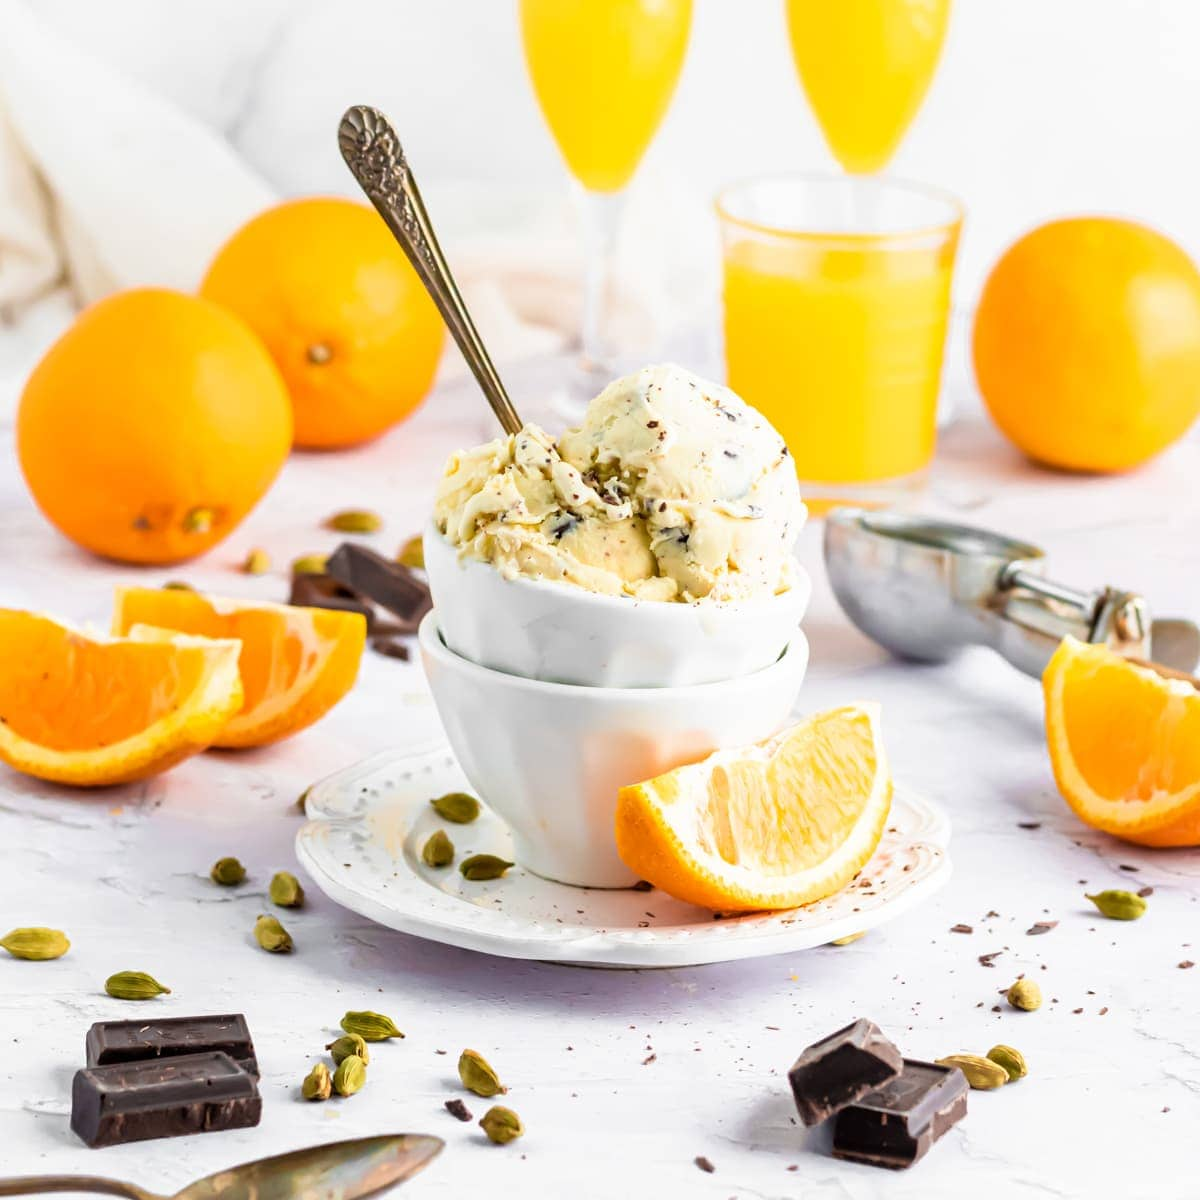 Two scoops of orange-cardamom ice cream with chocolate chips and a hot fudge swirl sit in a ceramic ramekin on a marble countertop. There are cardamom pods scattered across the table and two orange quarters next to it.